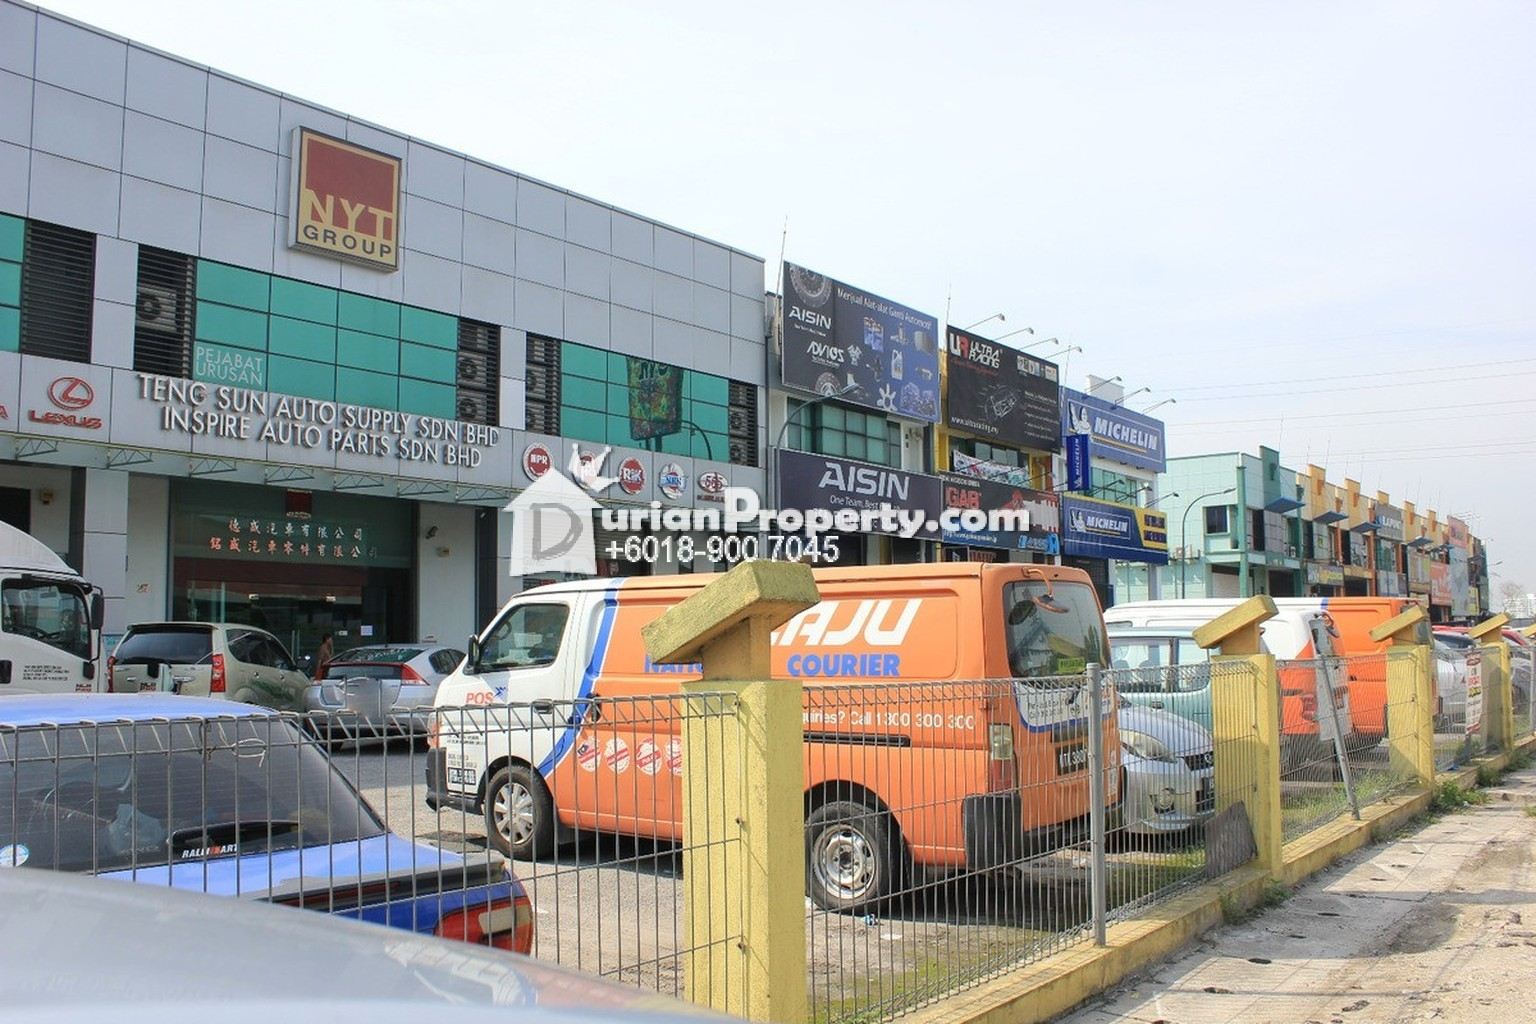 Terrace Factory For Sale At Dolomite Business Park Batu Caves For Rm 5 500 000 By Noor Fadzilah Rosli Durianproperty